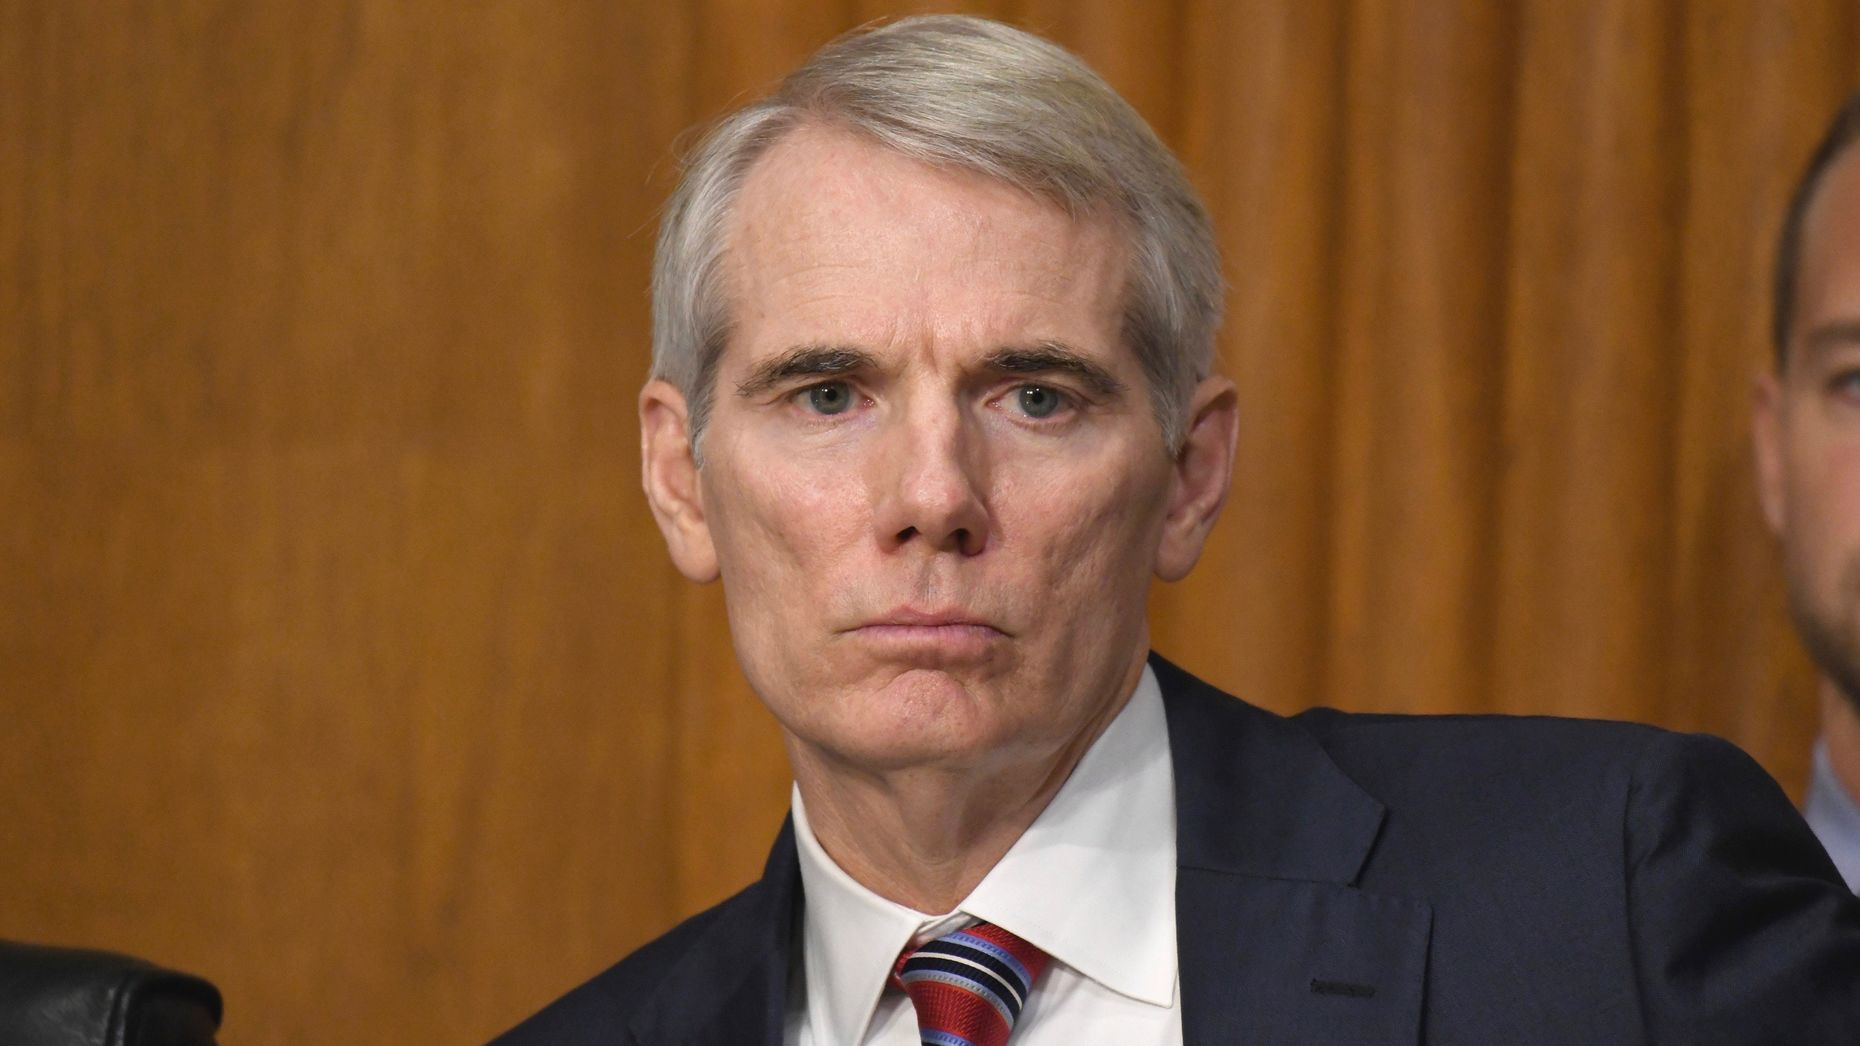 Ohio Senator Rob Portman. Photo by AP.